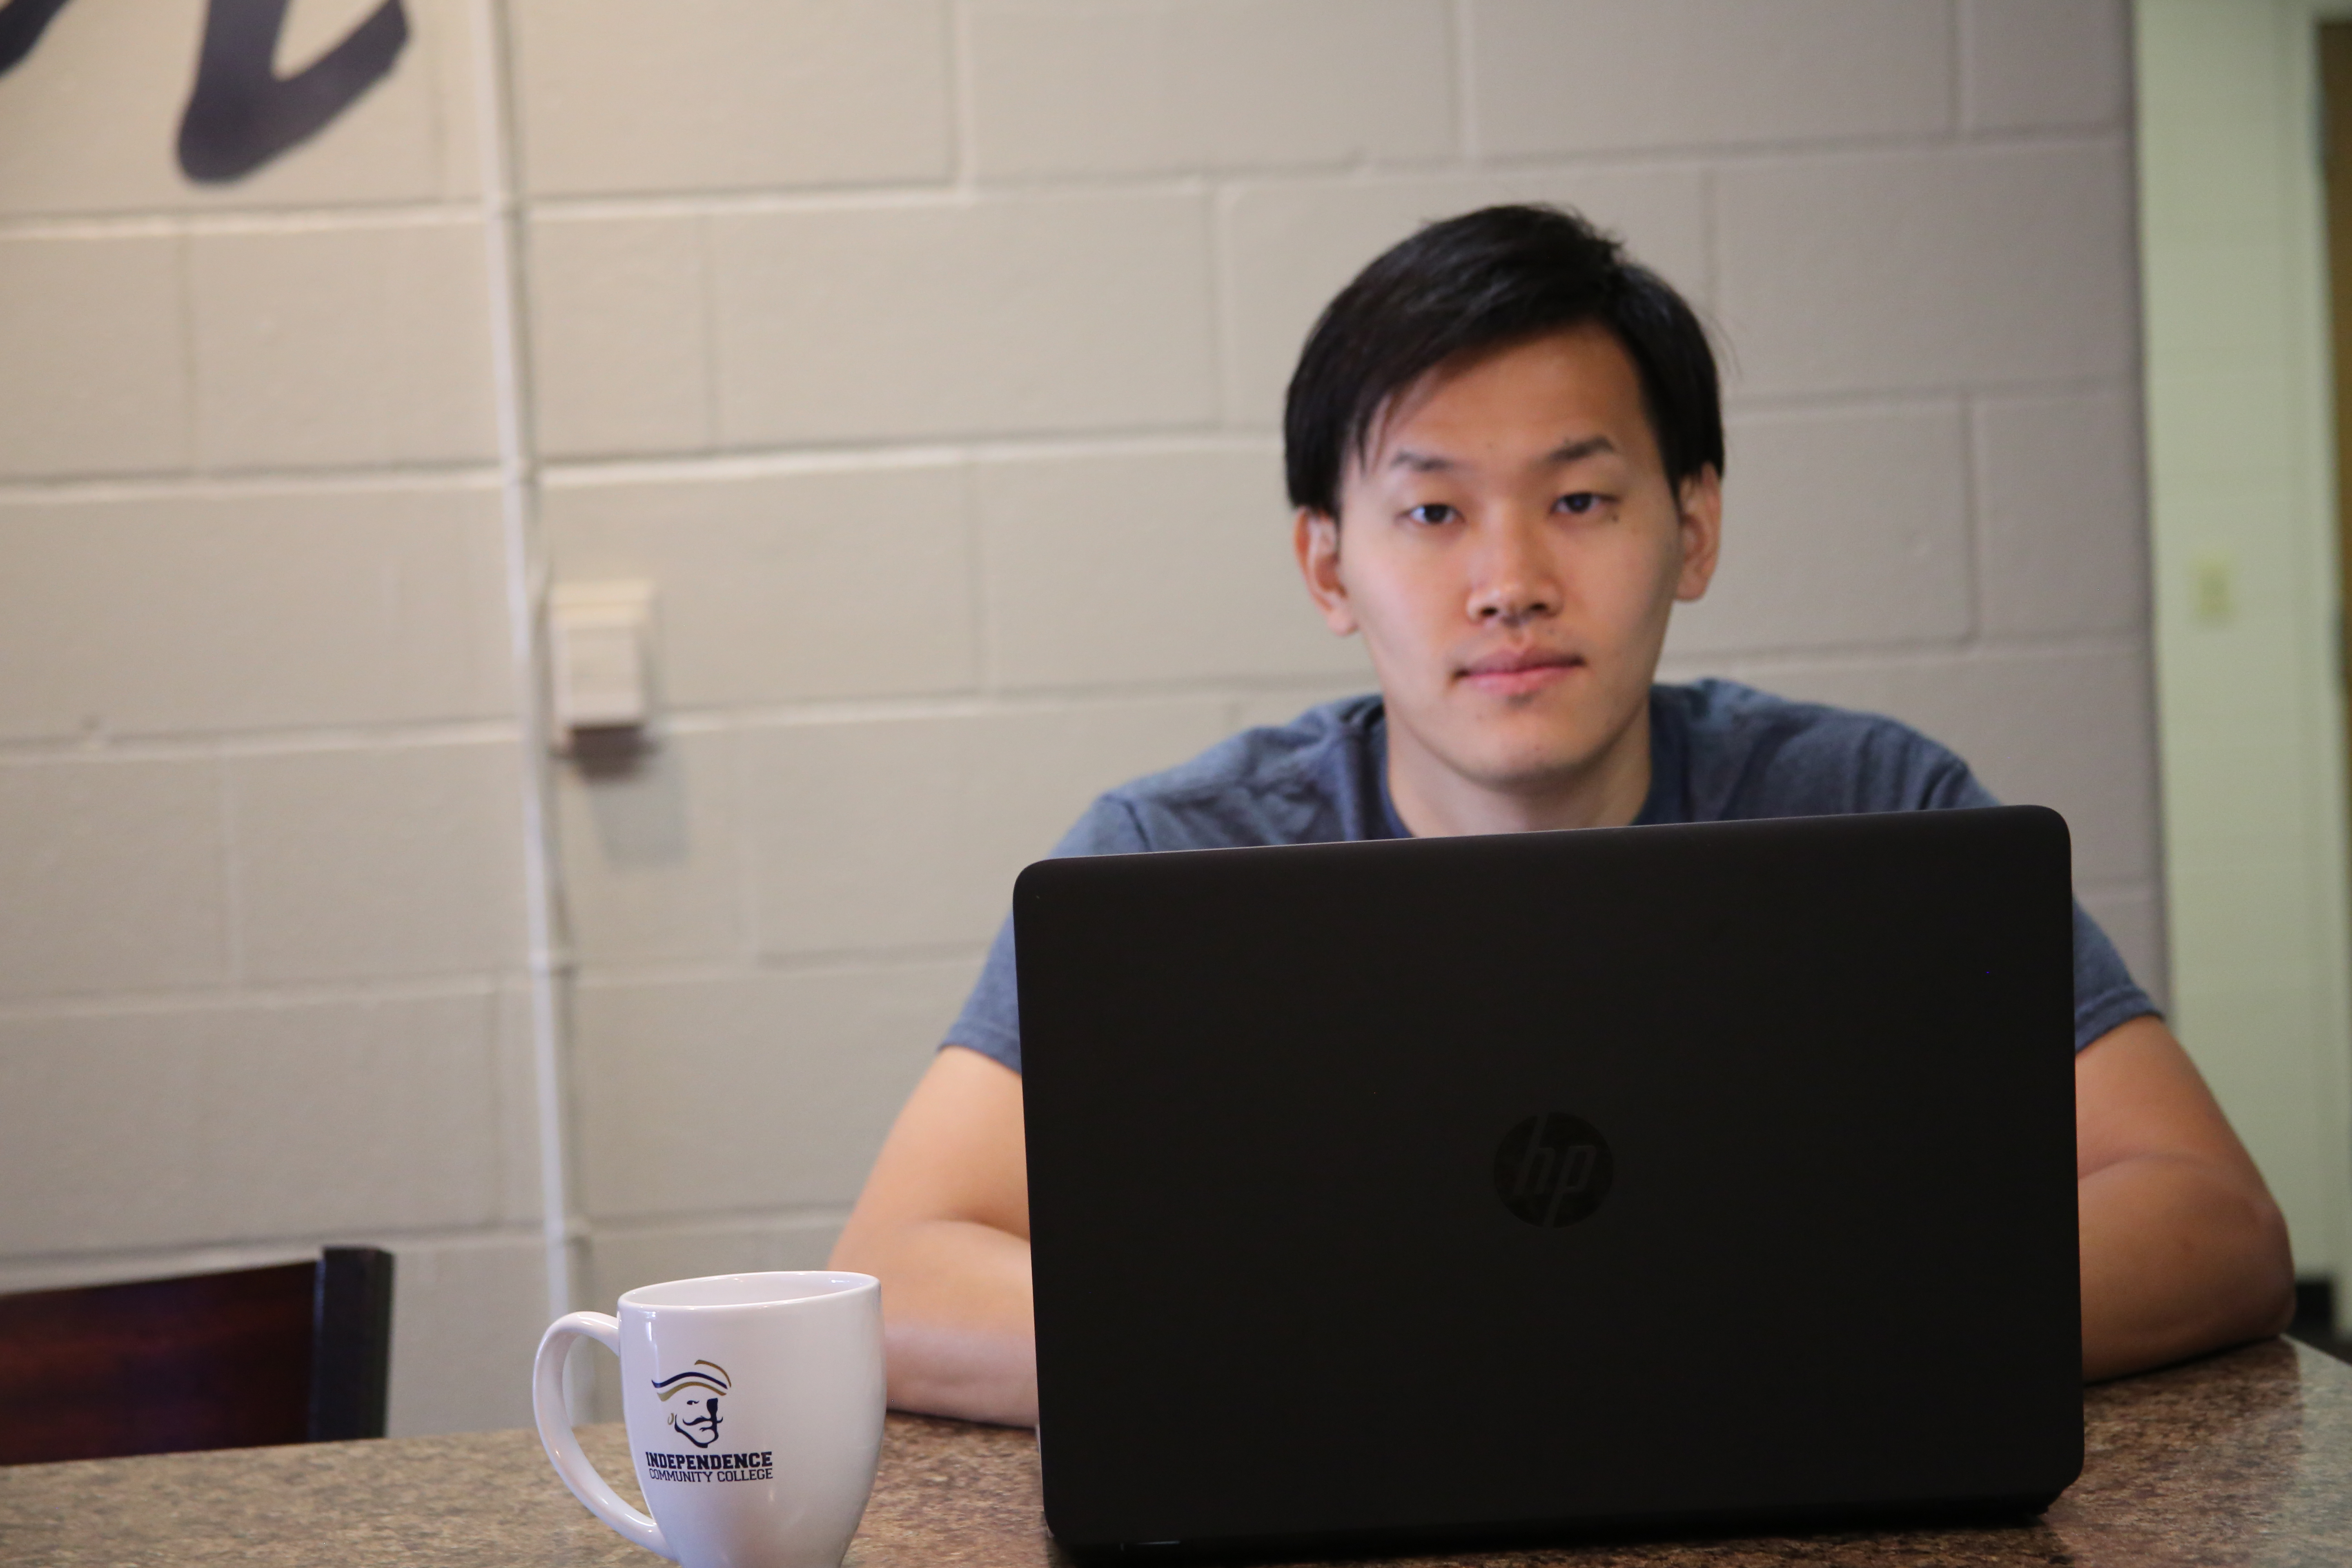 Student using a laptop